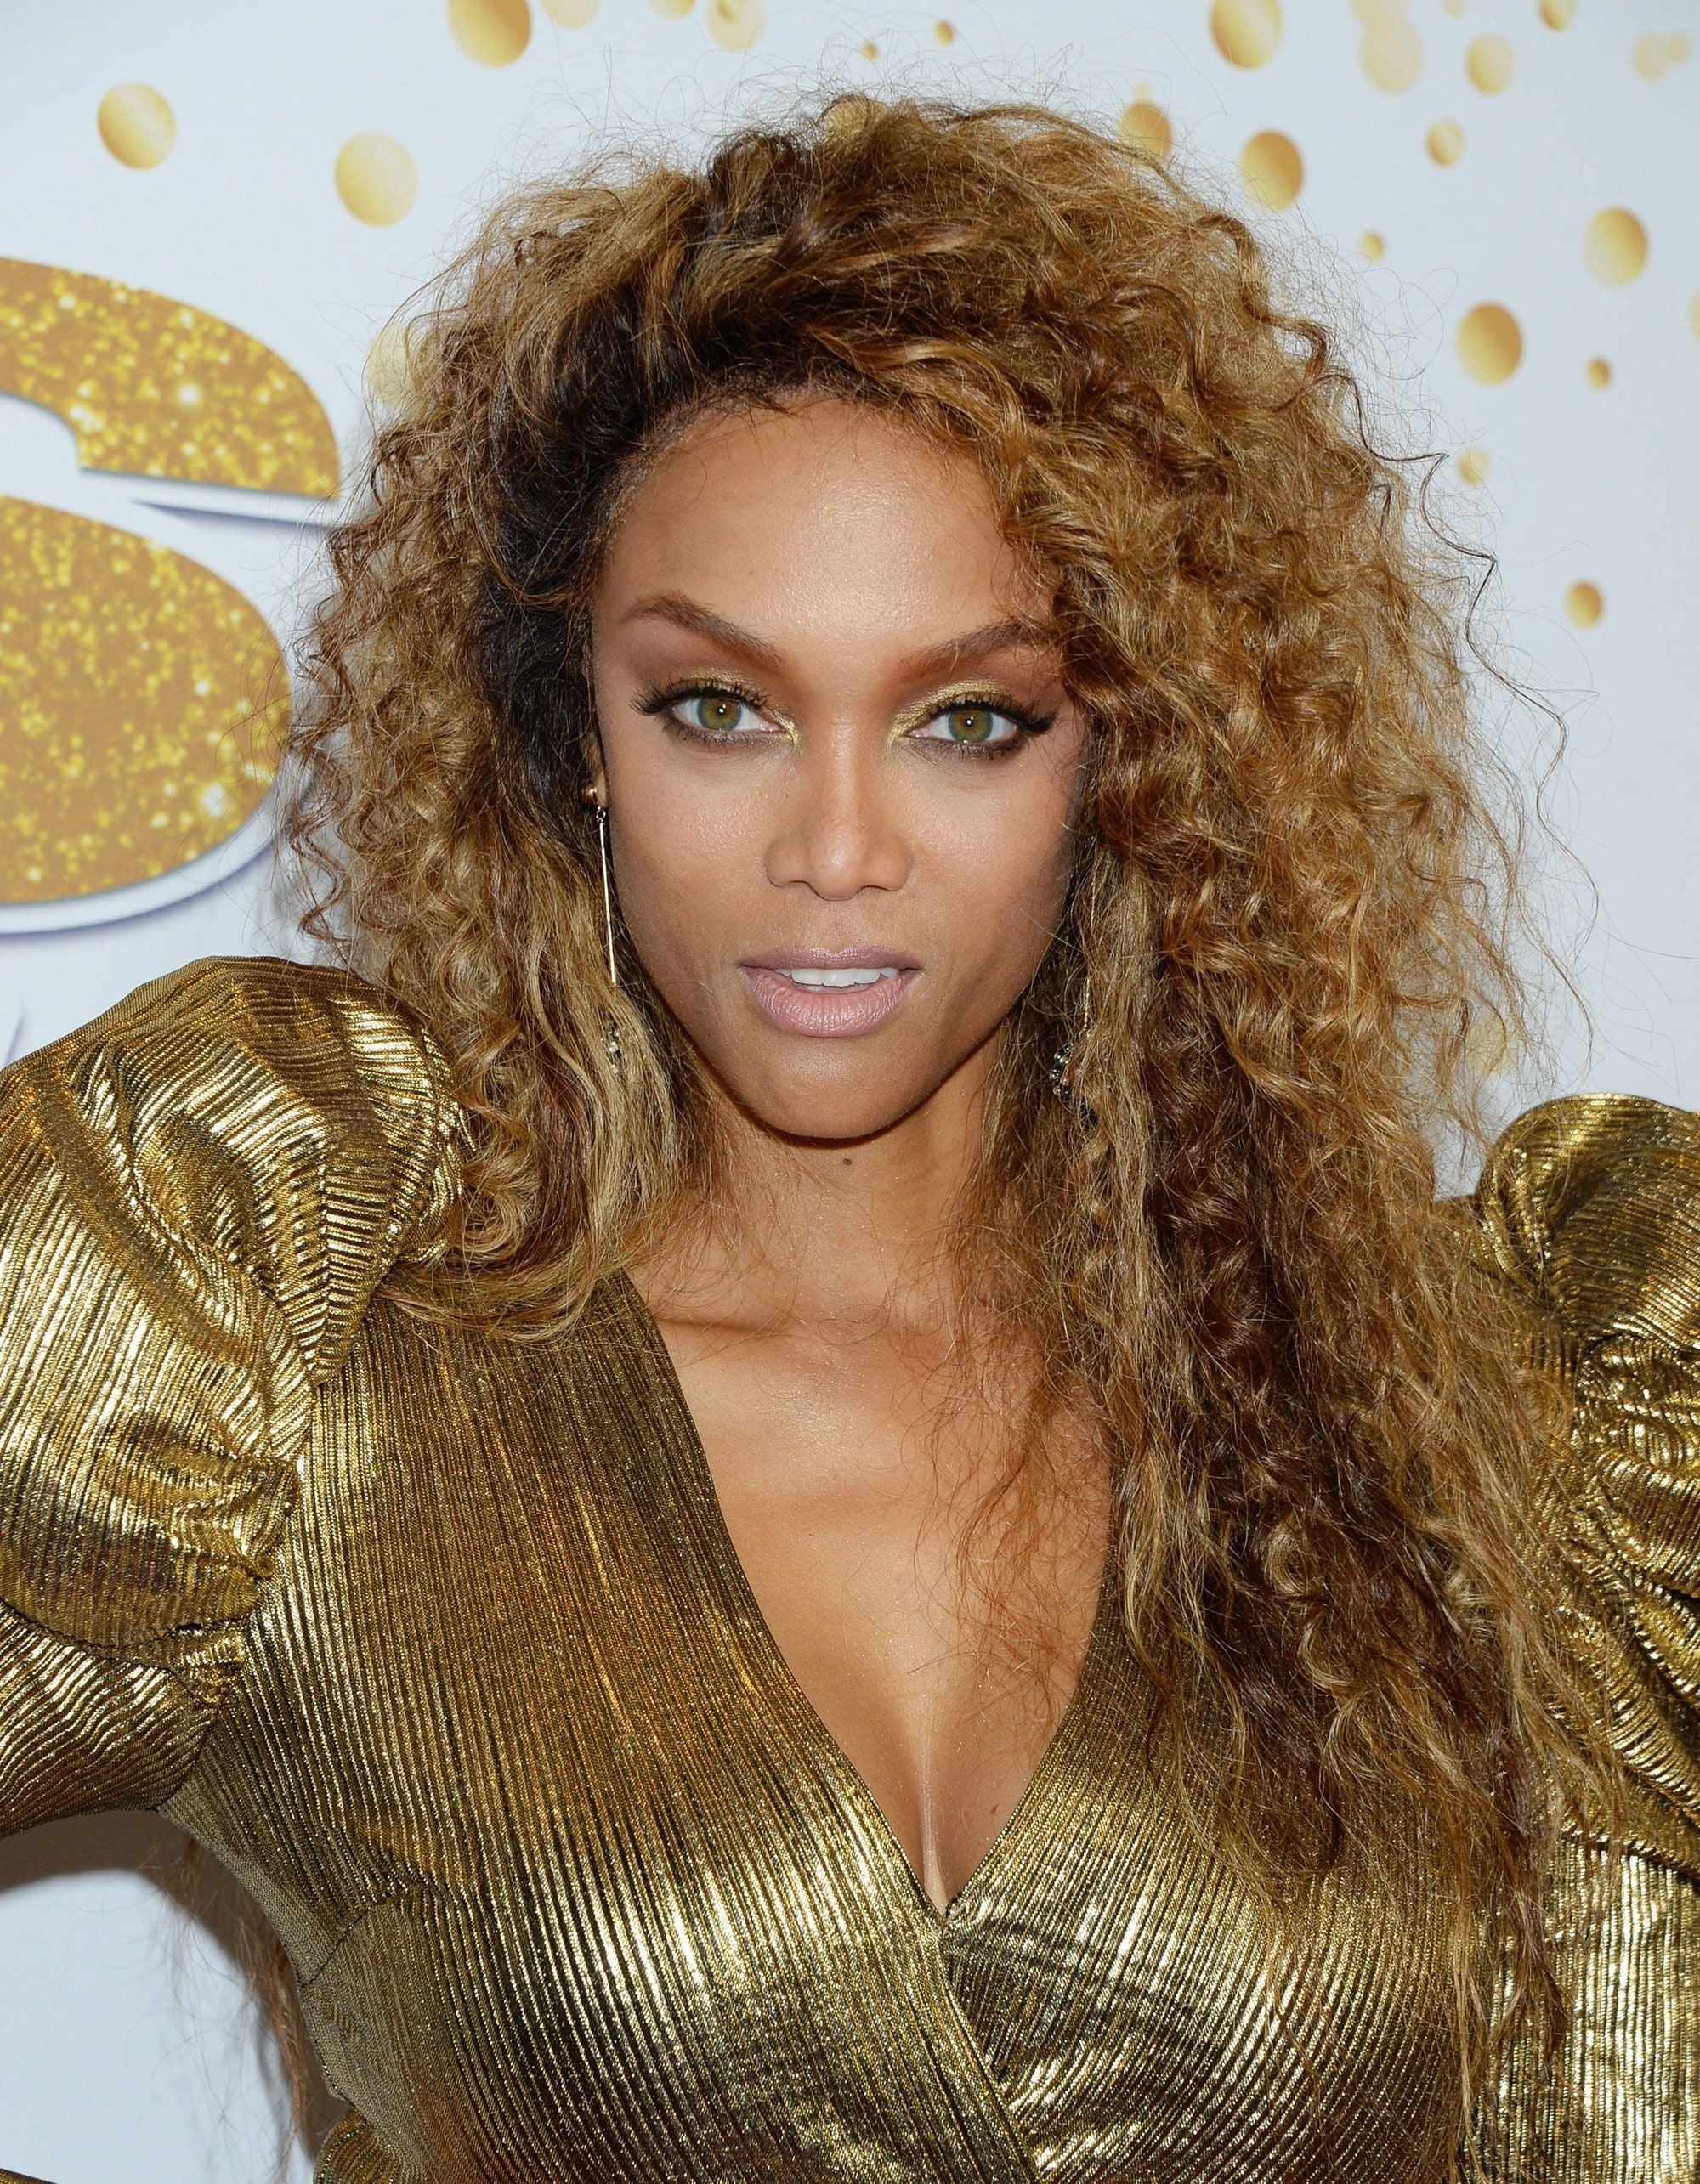 Brown hair with blonde highlights: Tyra Banks with long curly golden brown highlighted hair, wearing a gold metallic dress